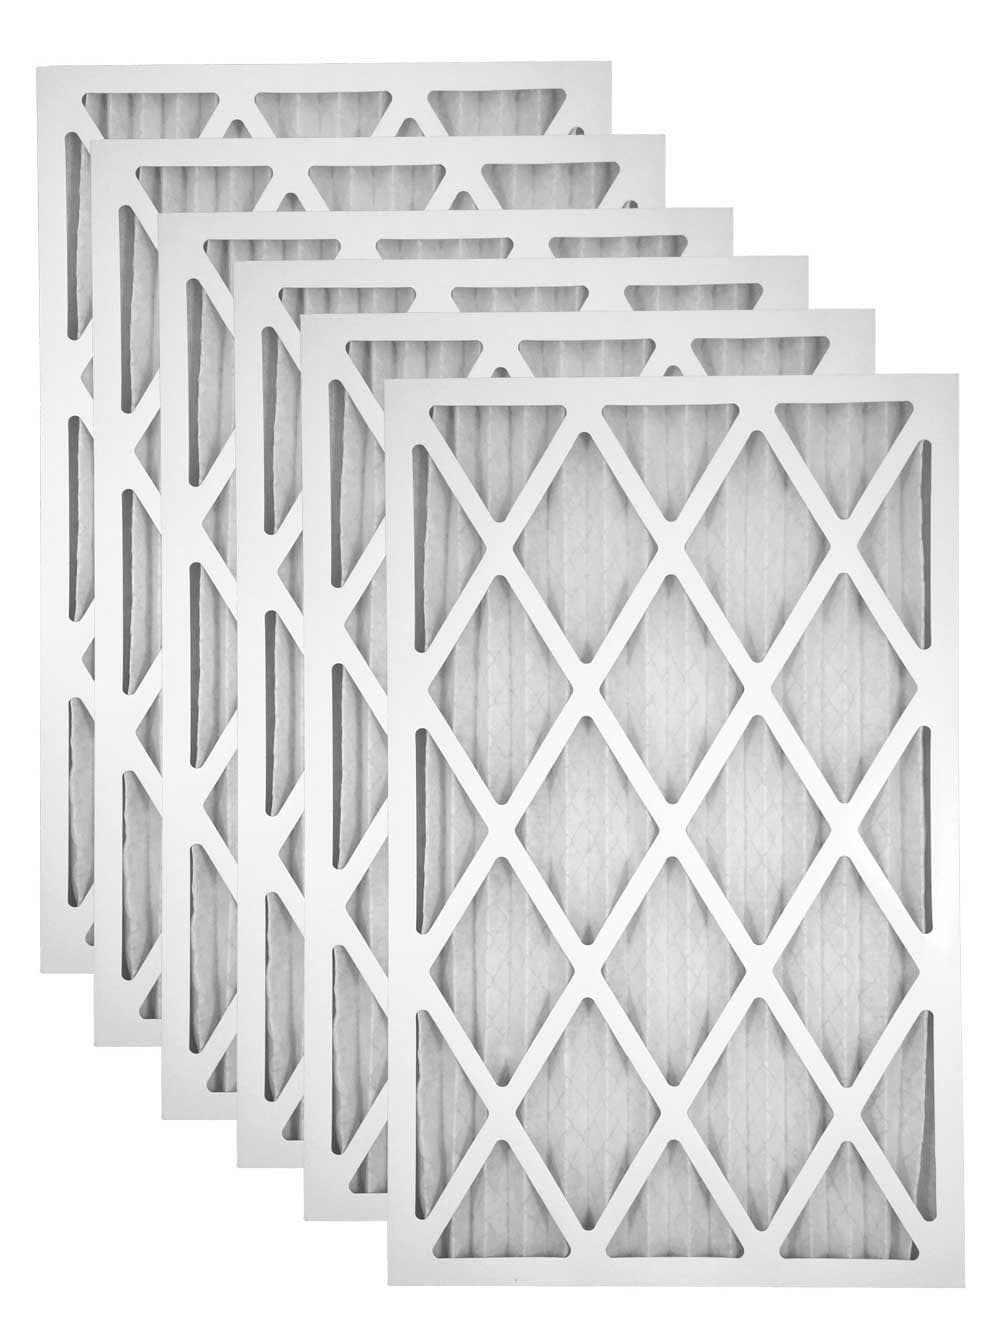 Atomic 12x25x2 MERV 11 Pleated AC Furnace Filter - 6 Pack